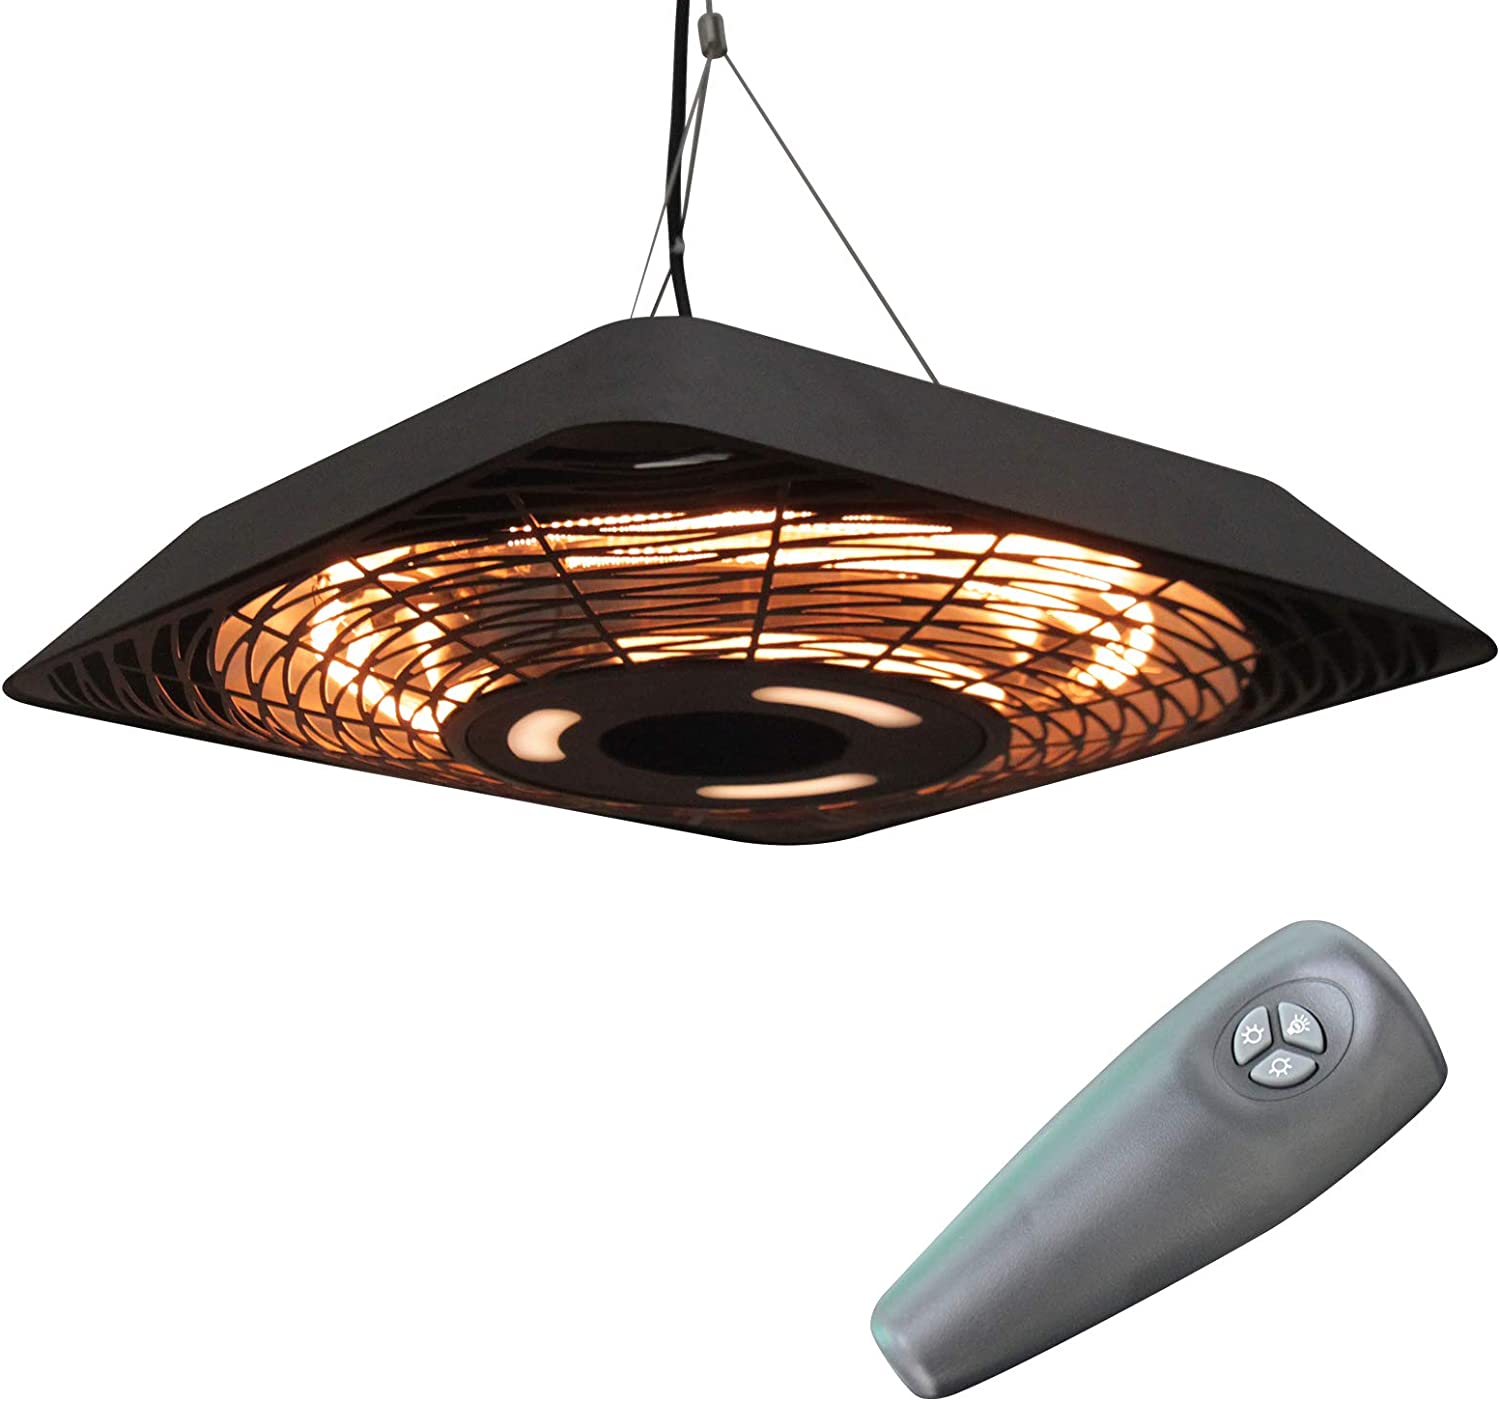 Outsunny 2000W Electric Hanging Patio